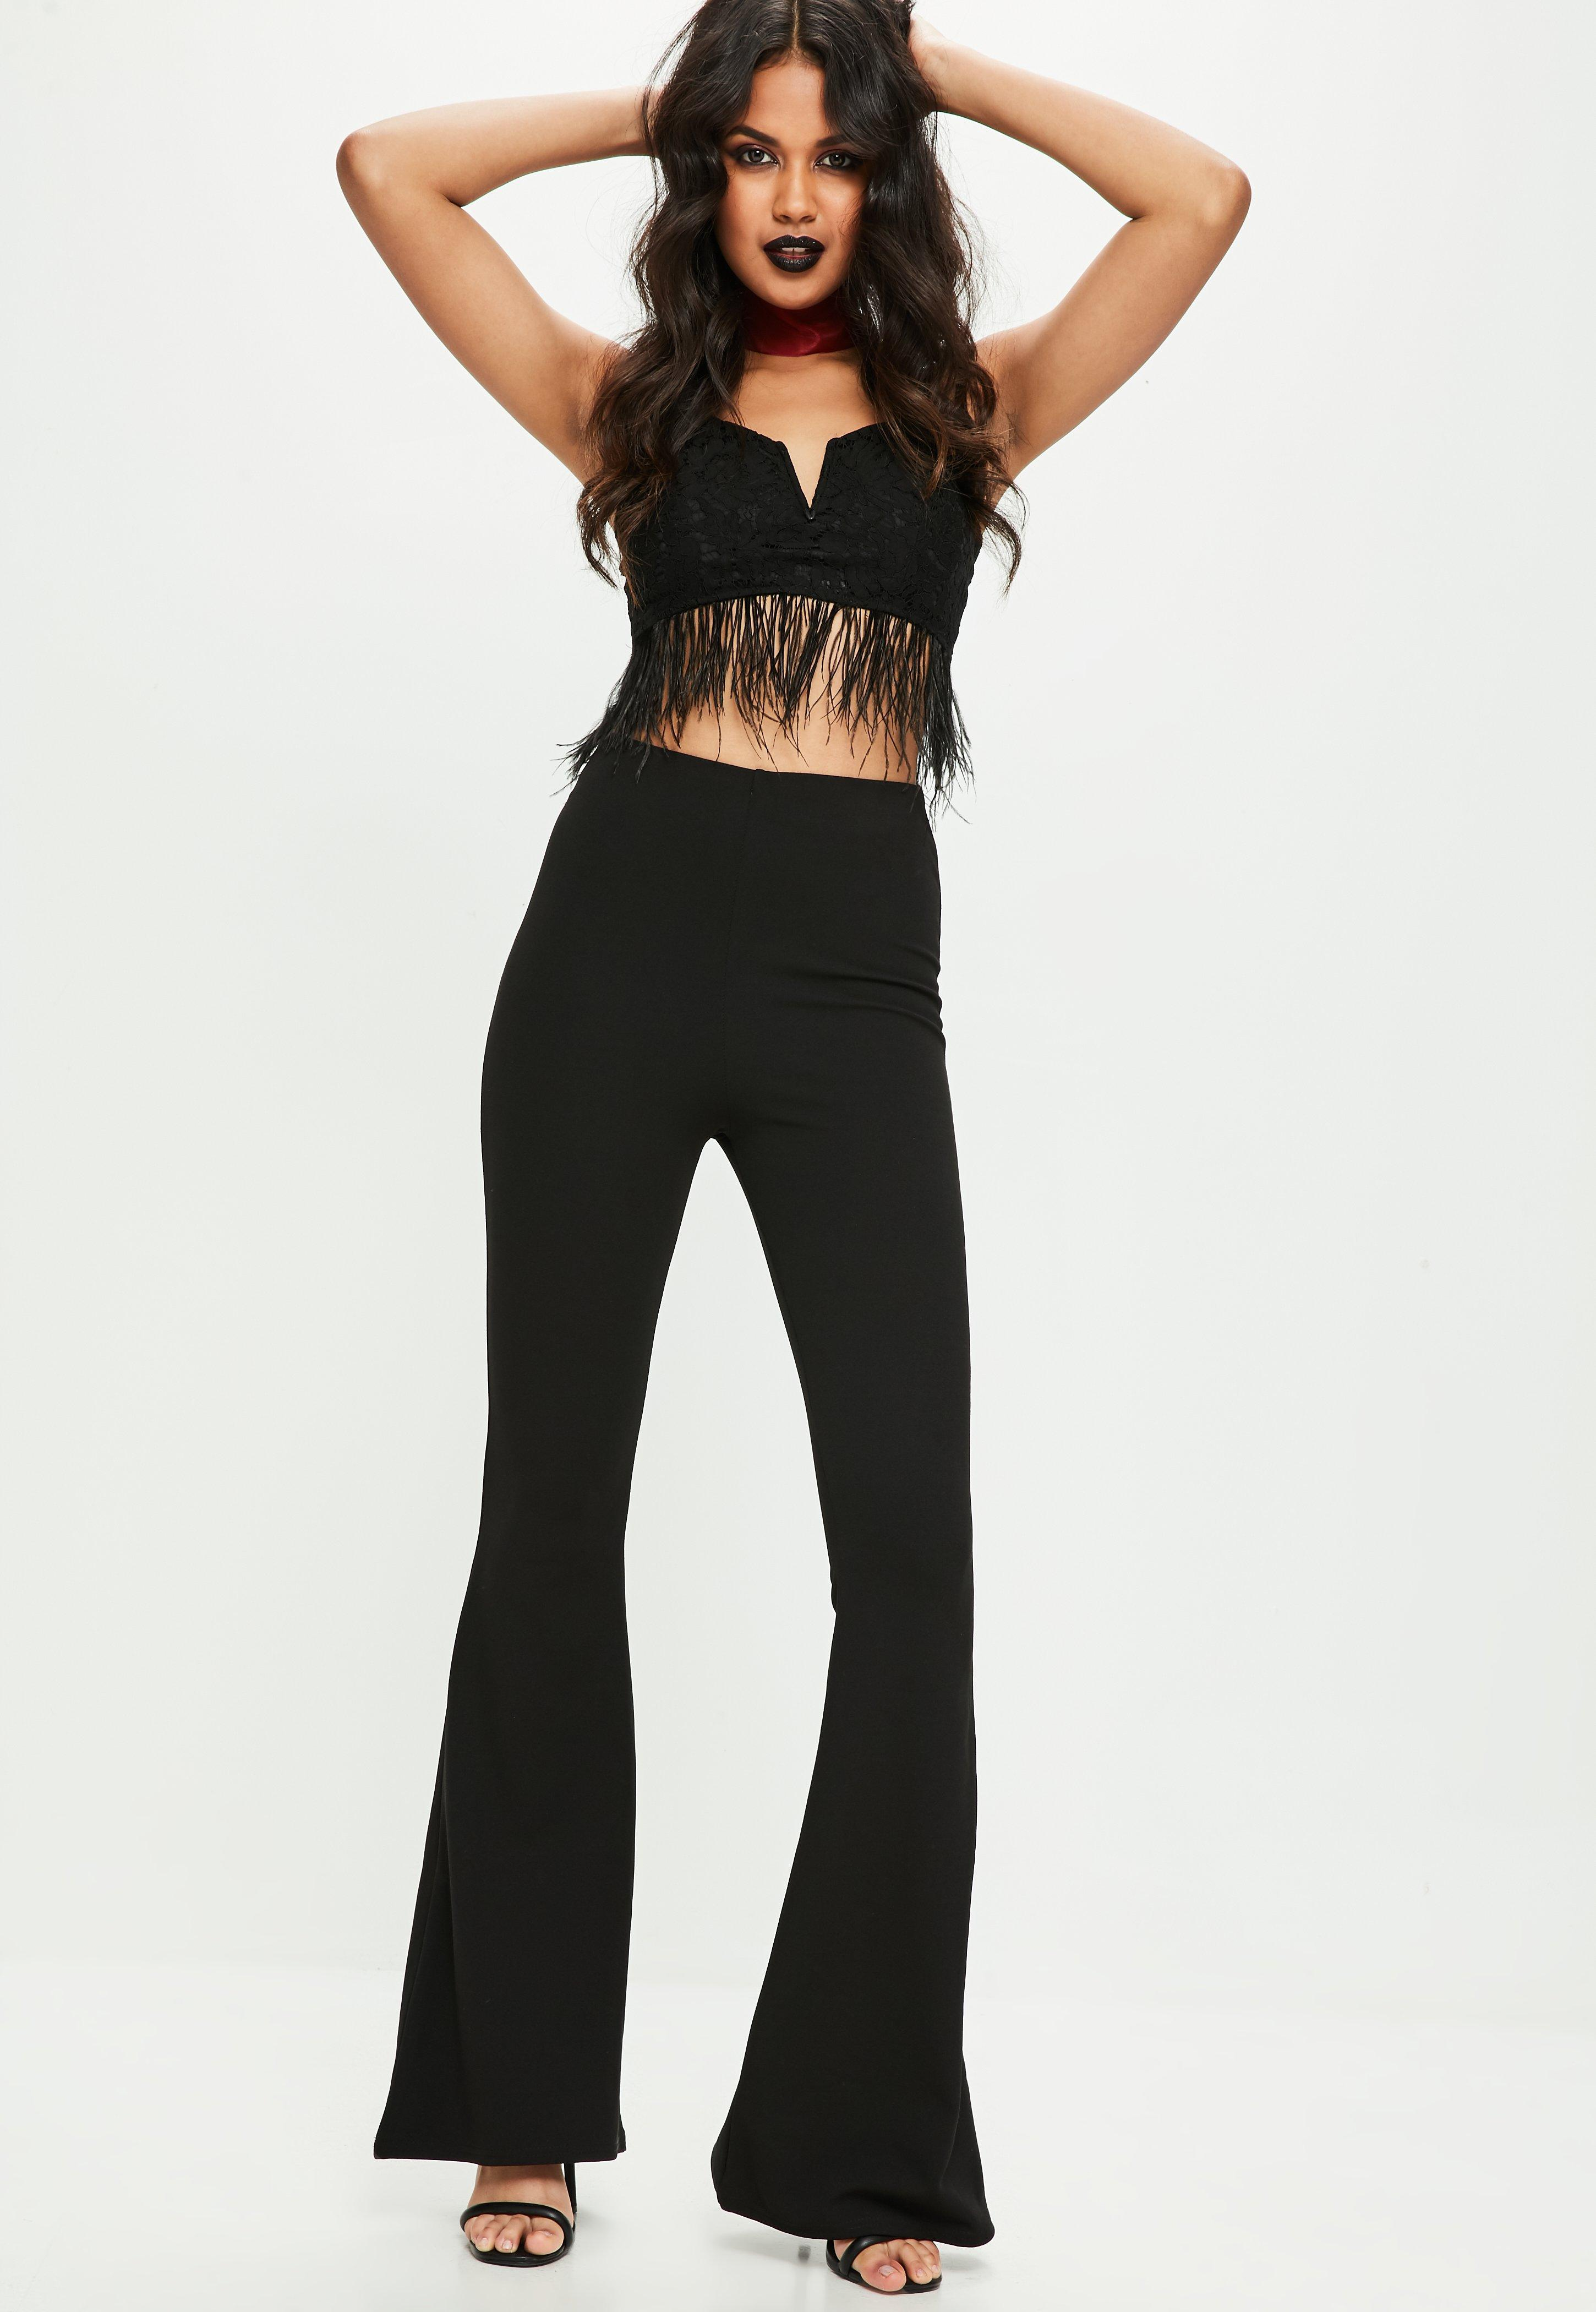 3bbd2d3b84980 Missguided - Black Lace Feather Trim Bralet - Lyst. View fullscreen